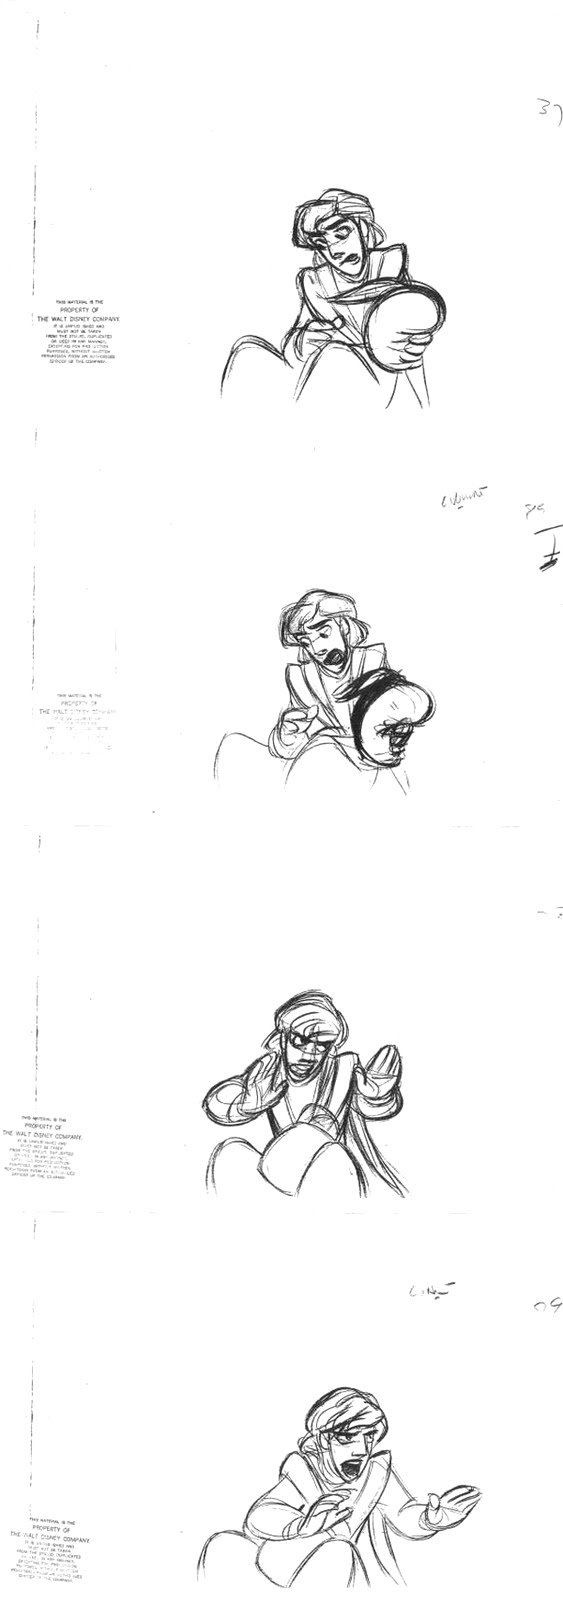 aladdin_disney_production_drawings_aladdin_002 (1).jpg